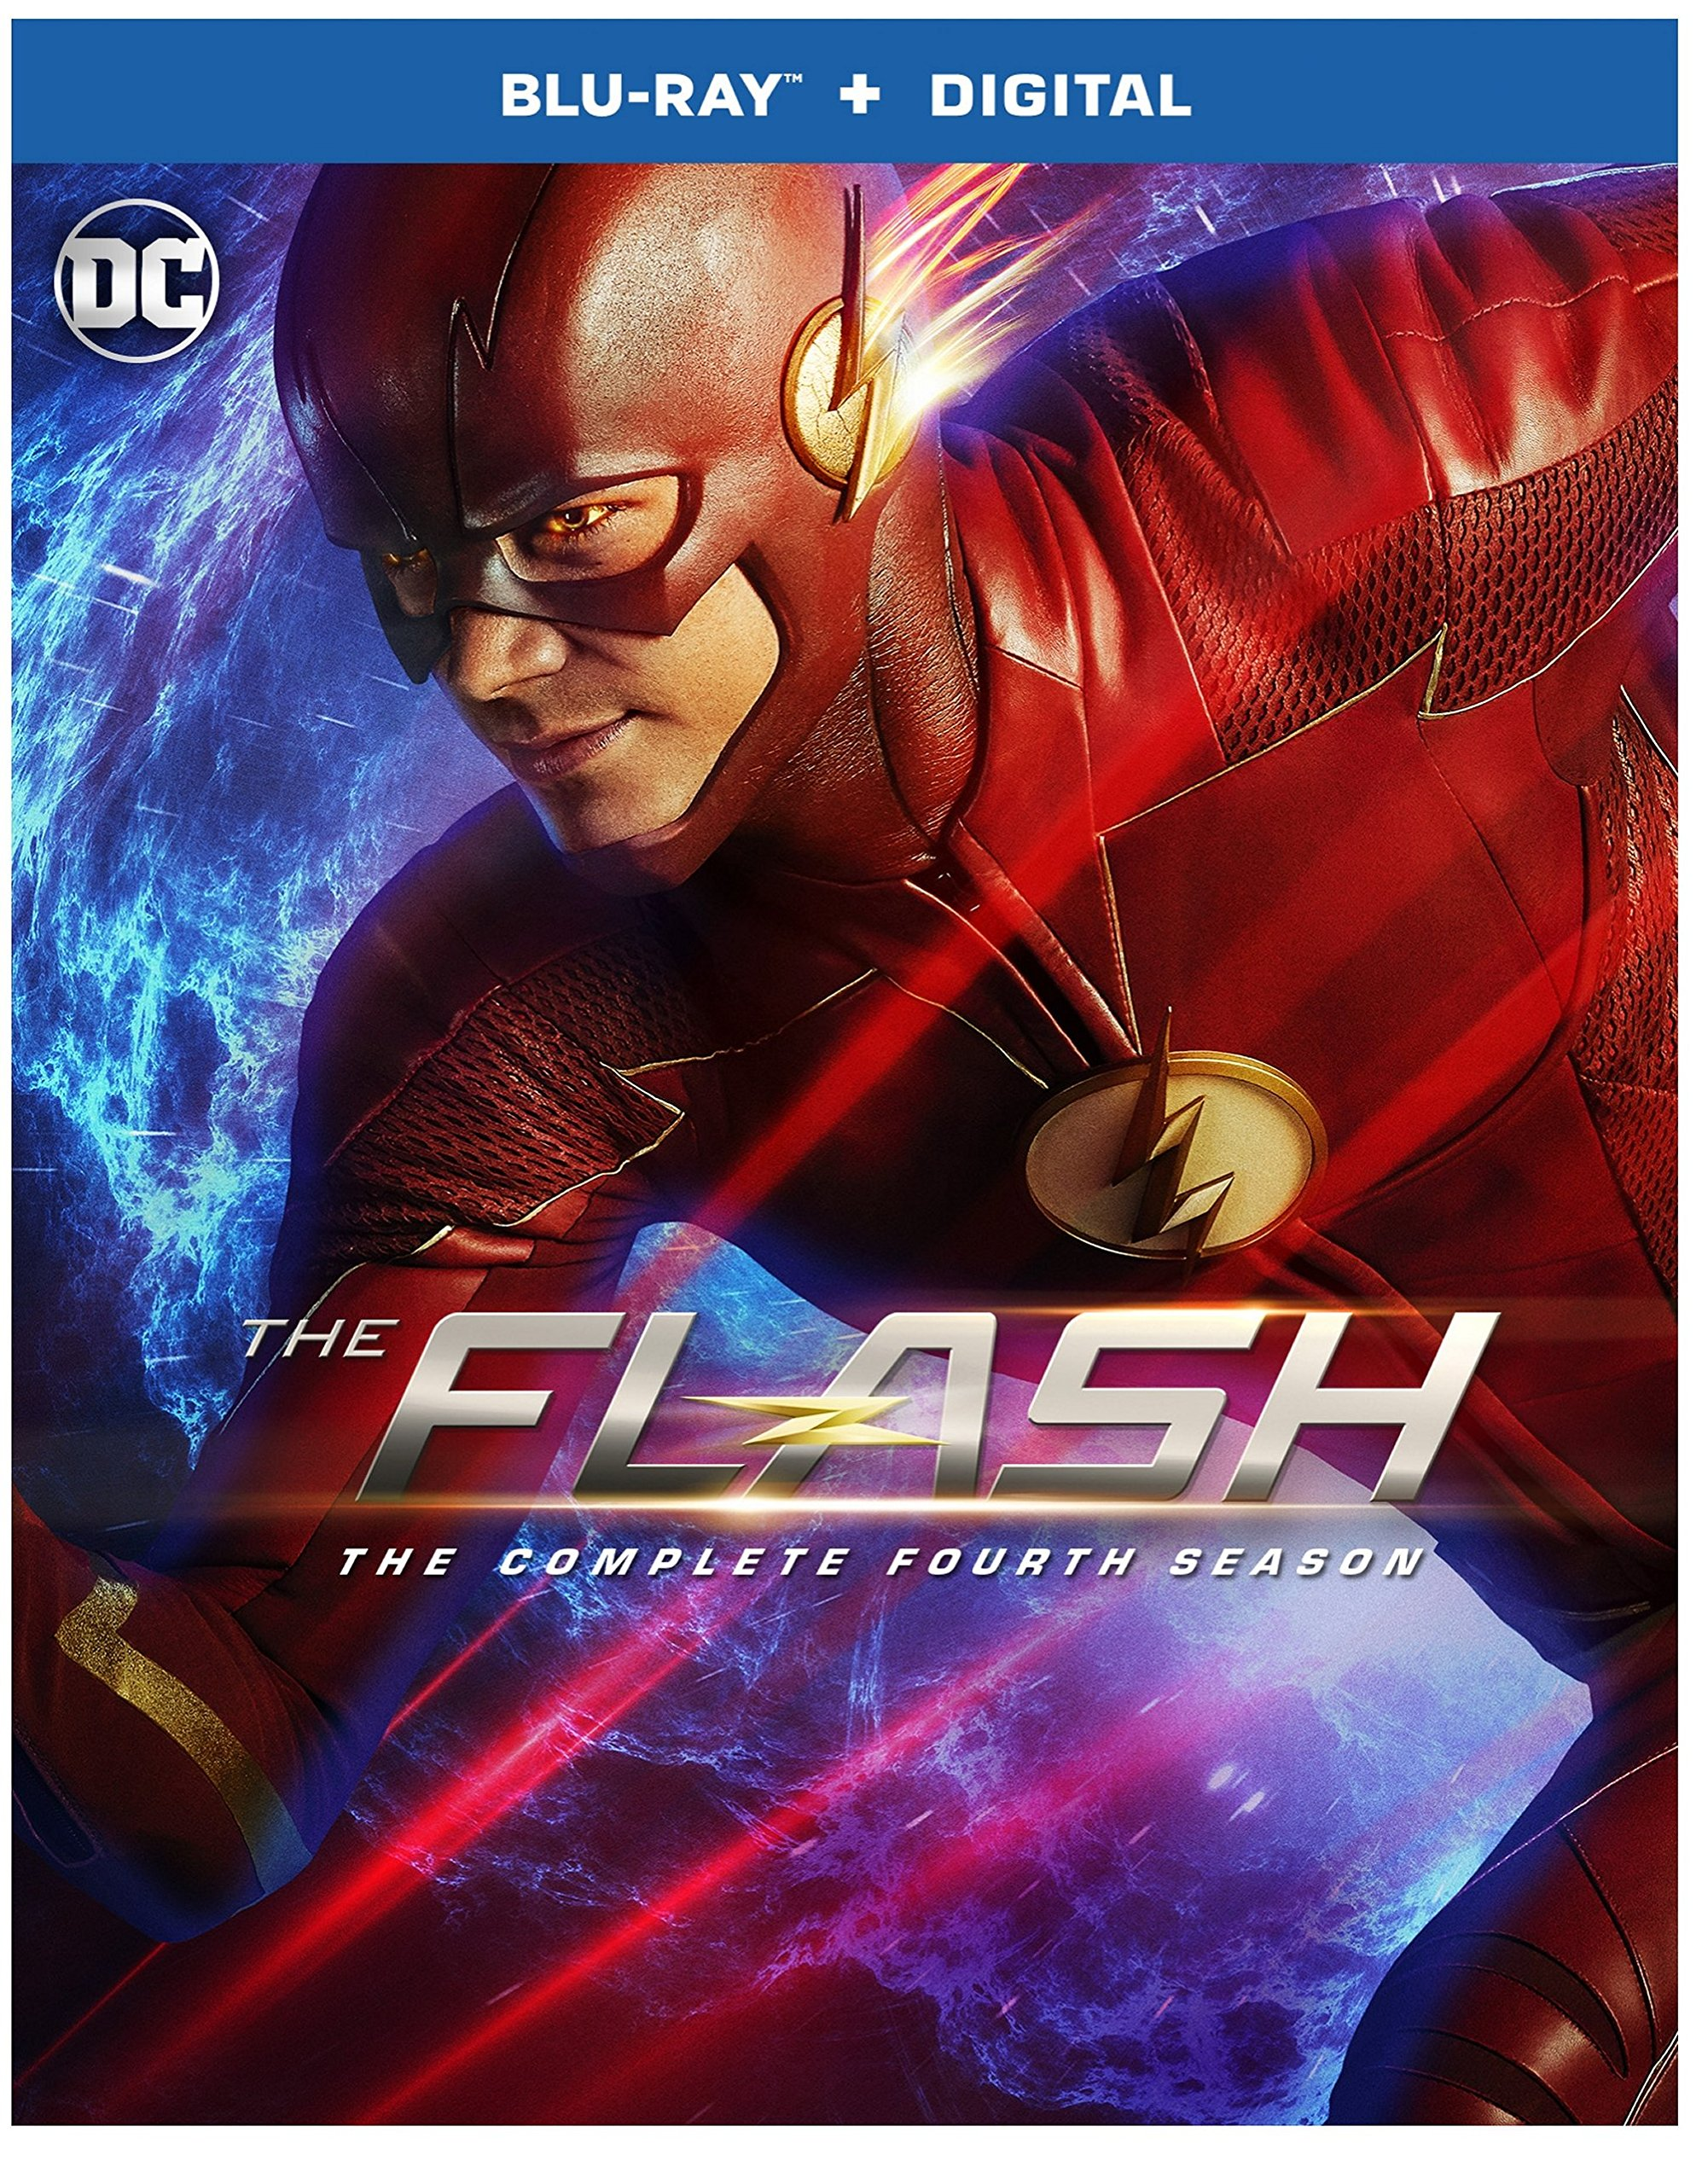 Blu-ray : The Flash: The Complete Fourth Season (dc) (Boxed Set, 4PC)